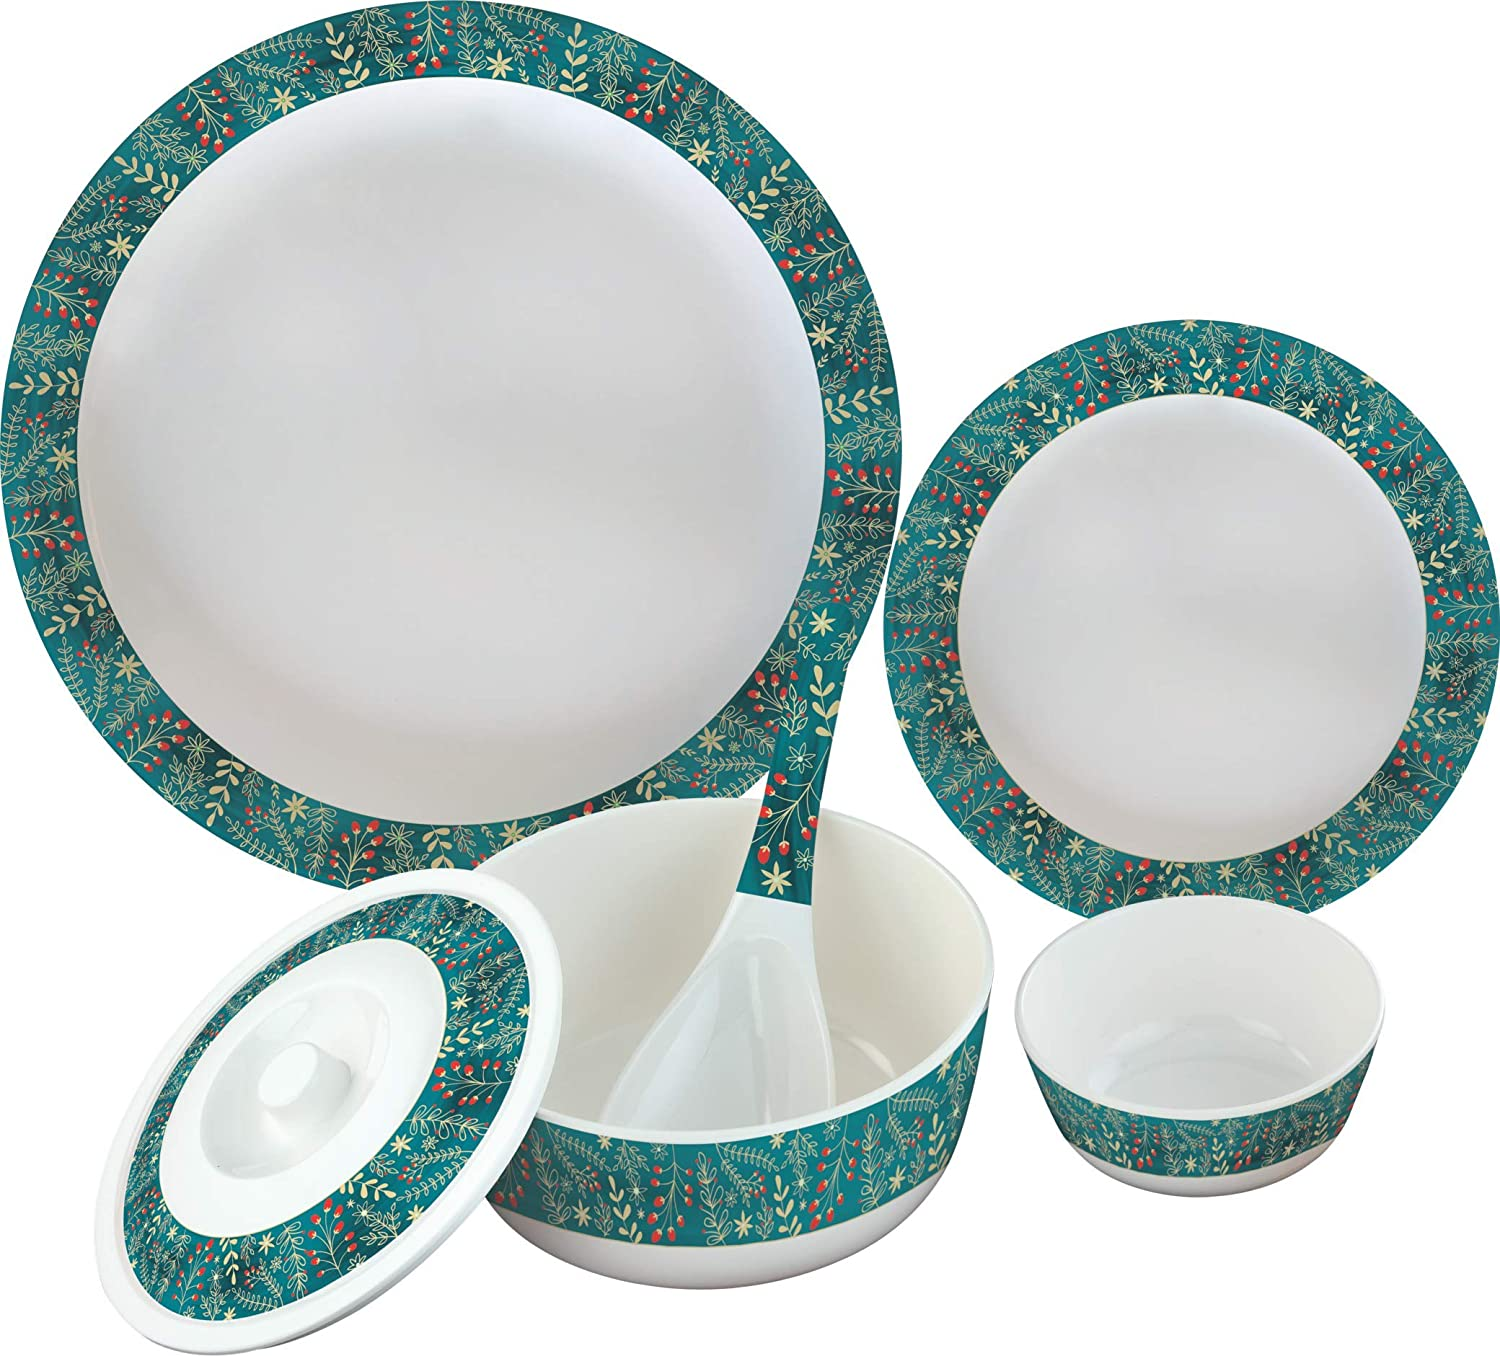 Buy Servewell 24 Pcs Melamine Dinner Set Garden Of Love Online At Low Prices In India Amazon In